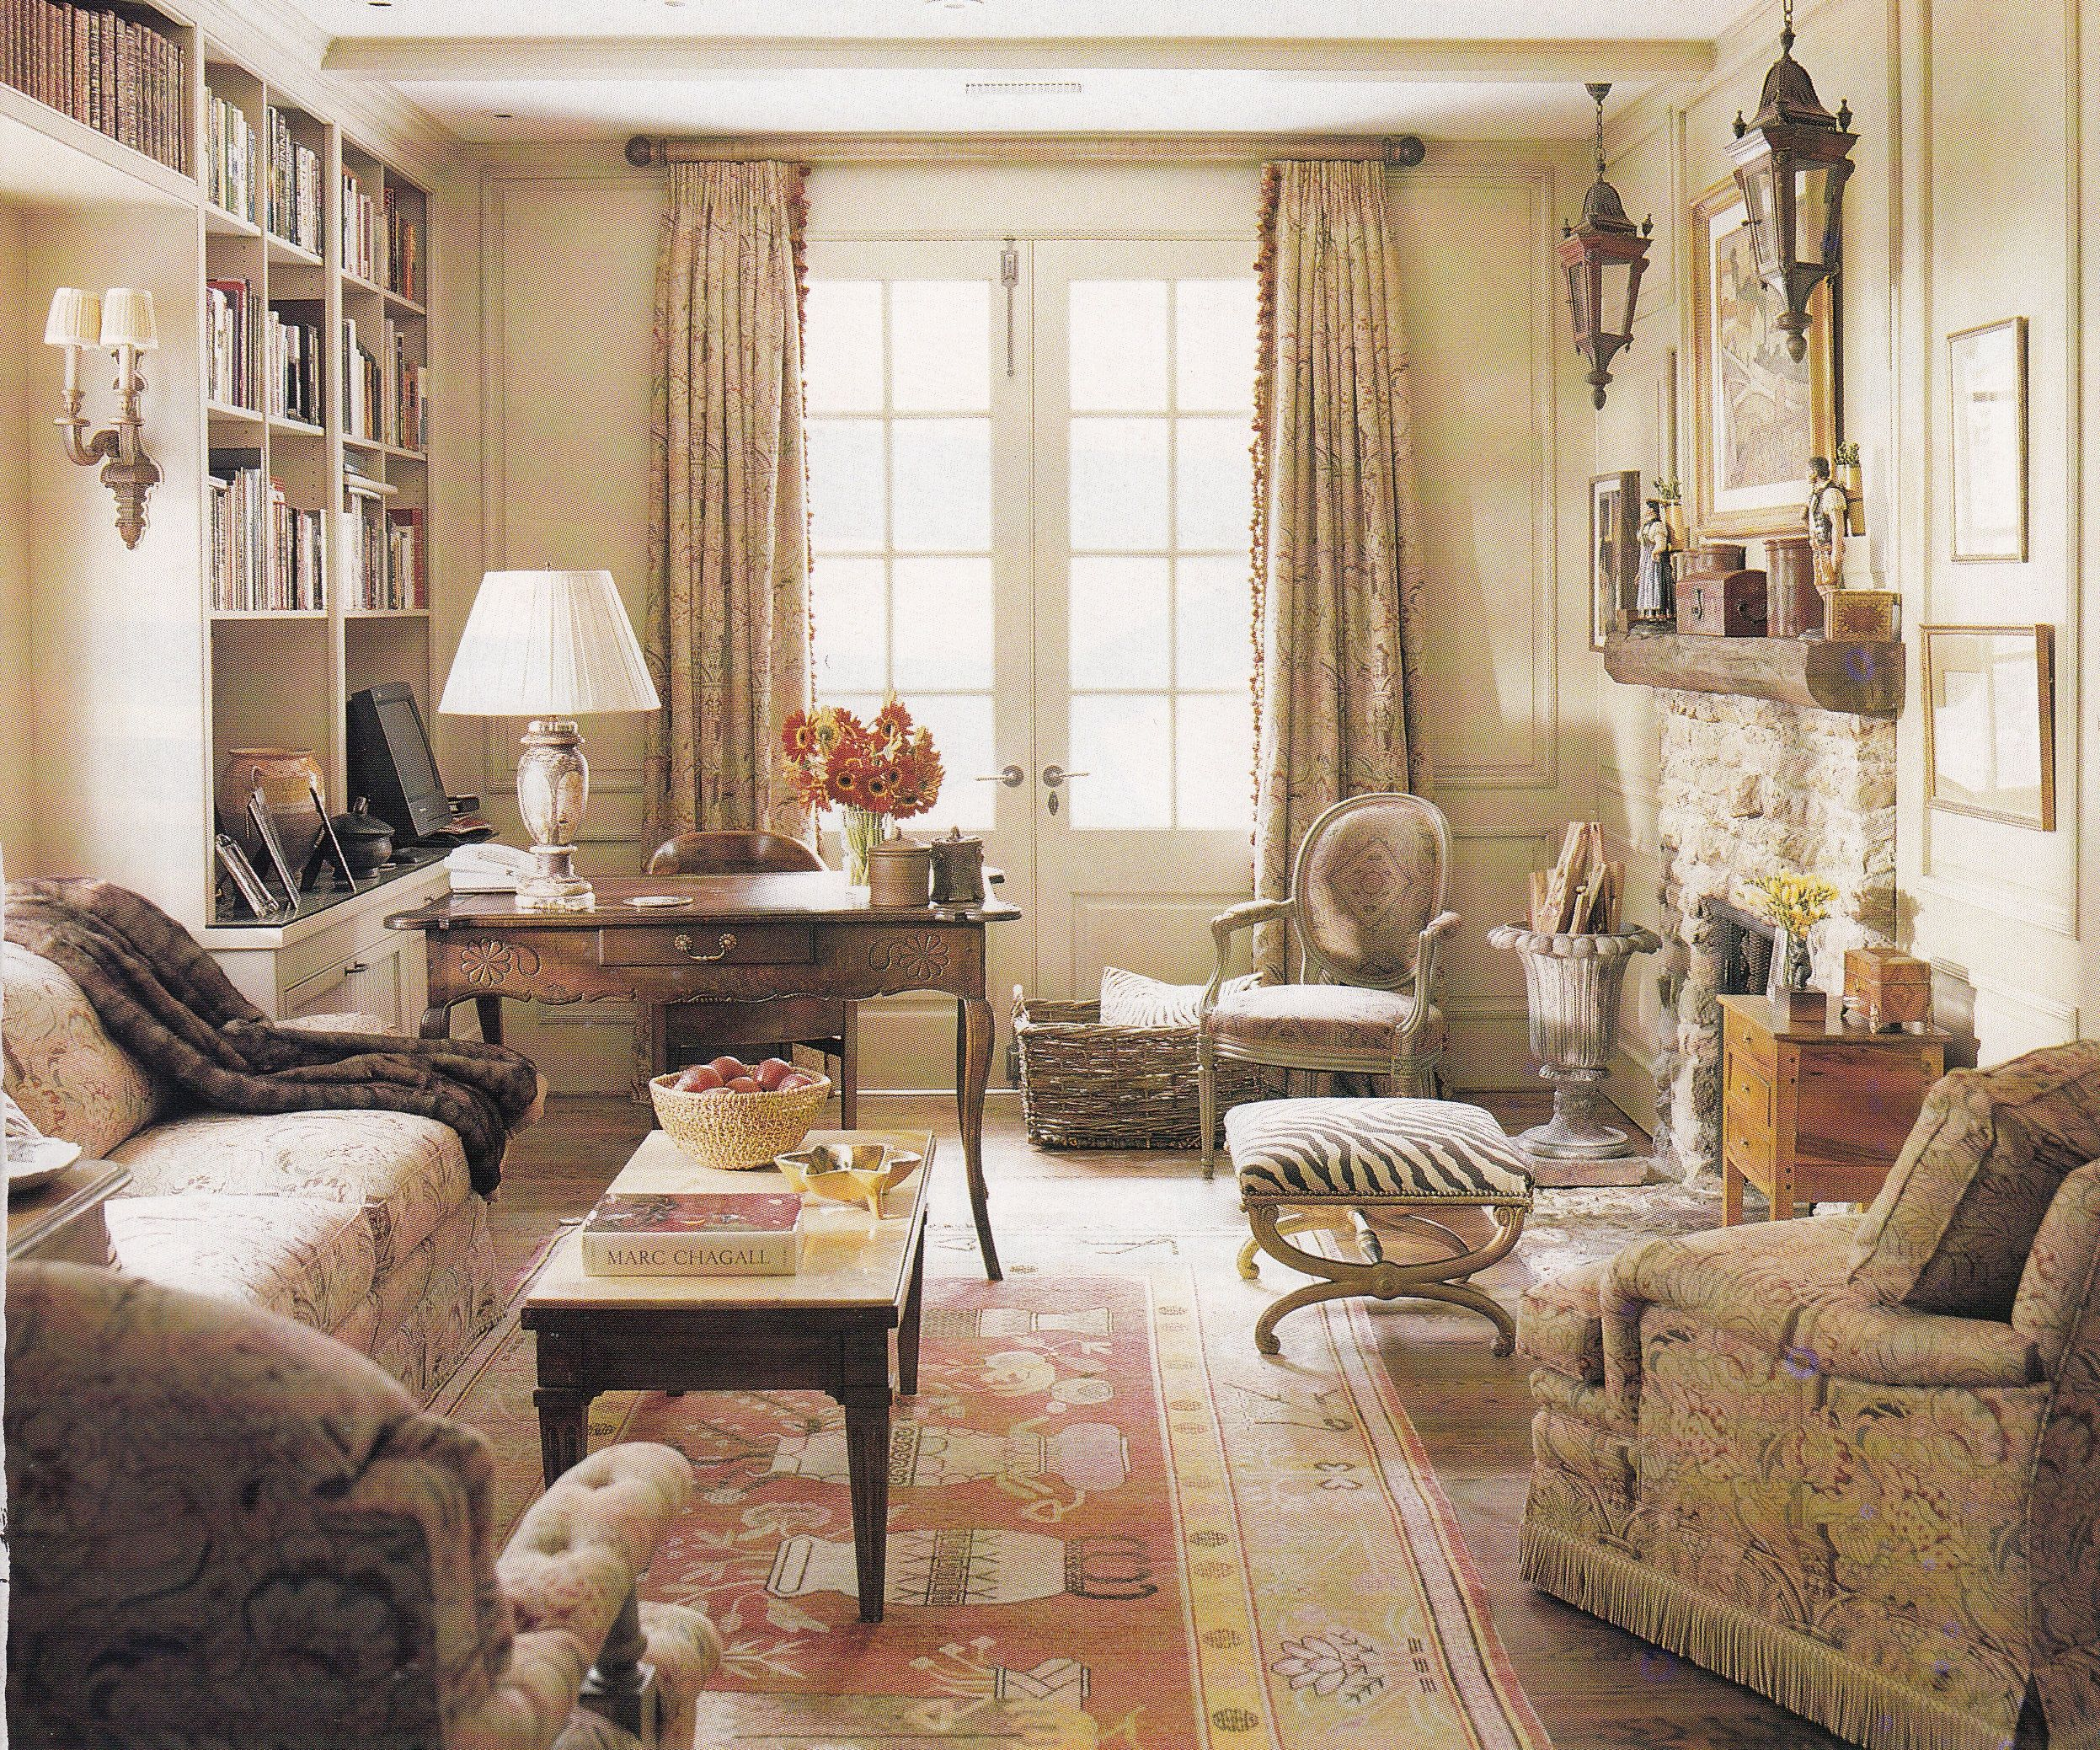 Dan Carithers & Architect Norman Askins, Virginia Country House. Southern Accents Jan-Feb 2002